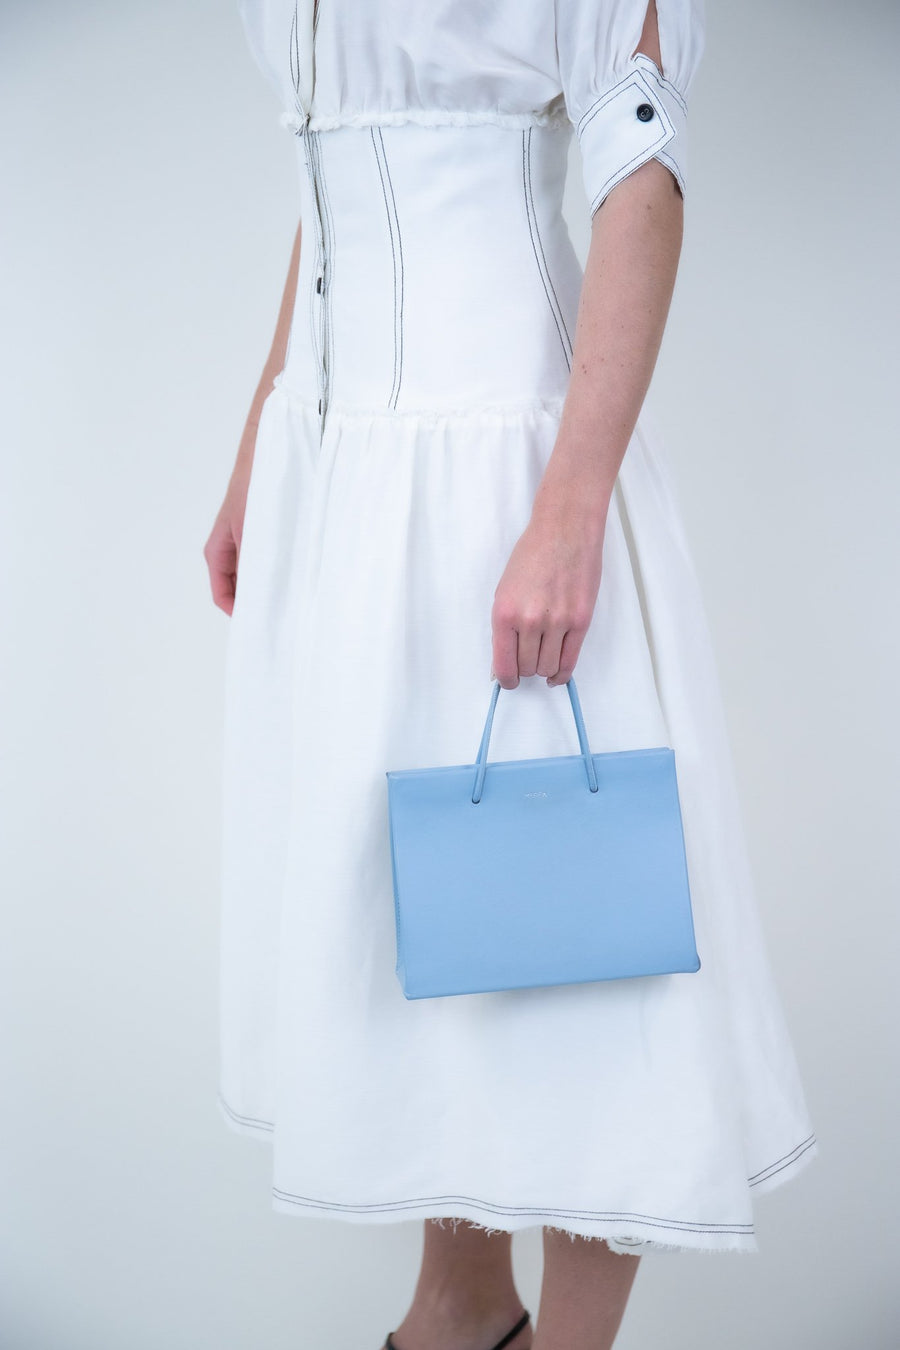 Rent MEDEA Light Blue Leather Tote Bag from Rotaro